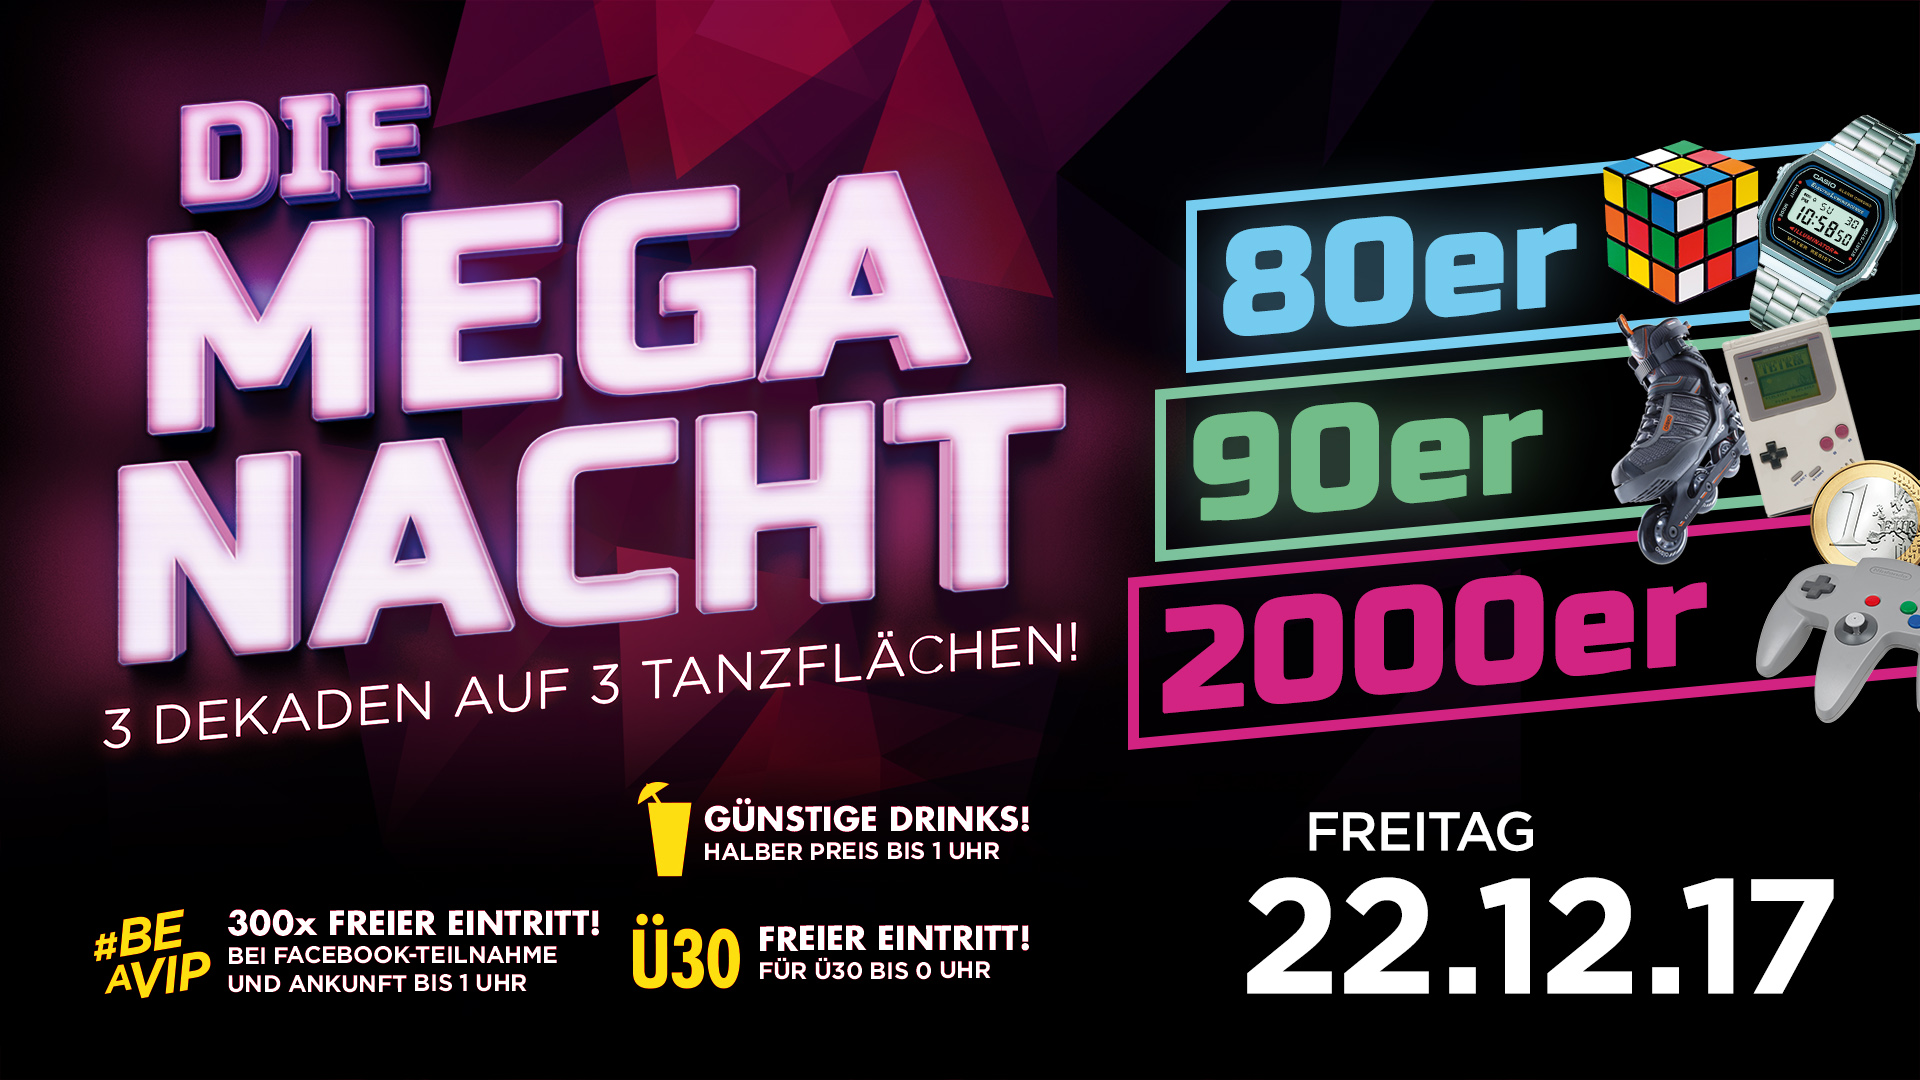 Die mega Nacht - 3 Dekaden = 1 Party